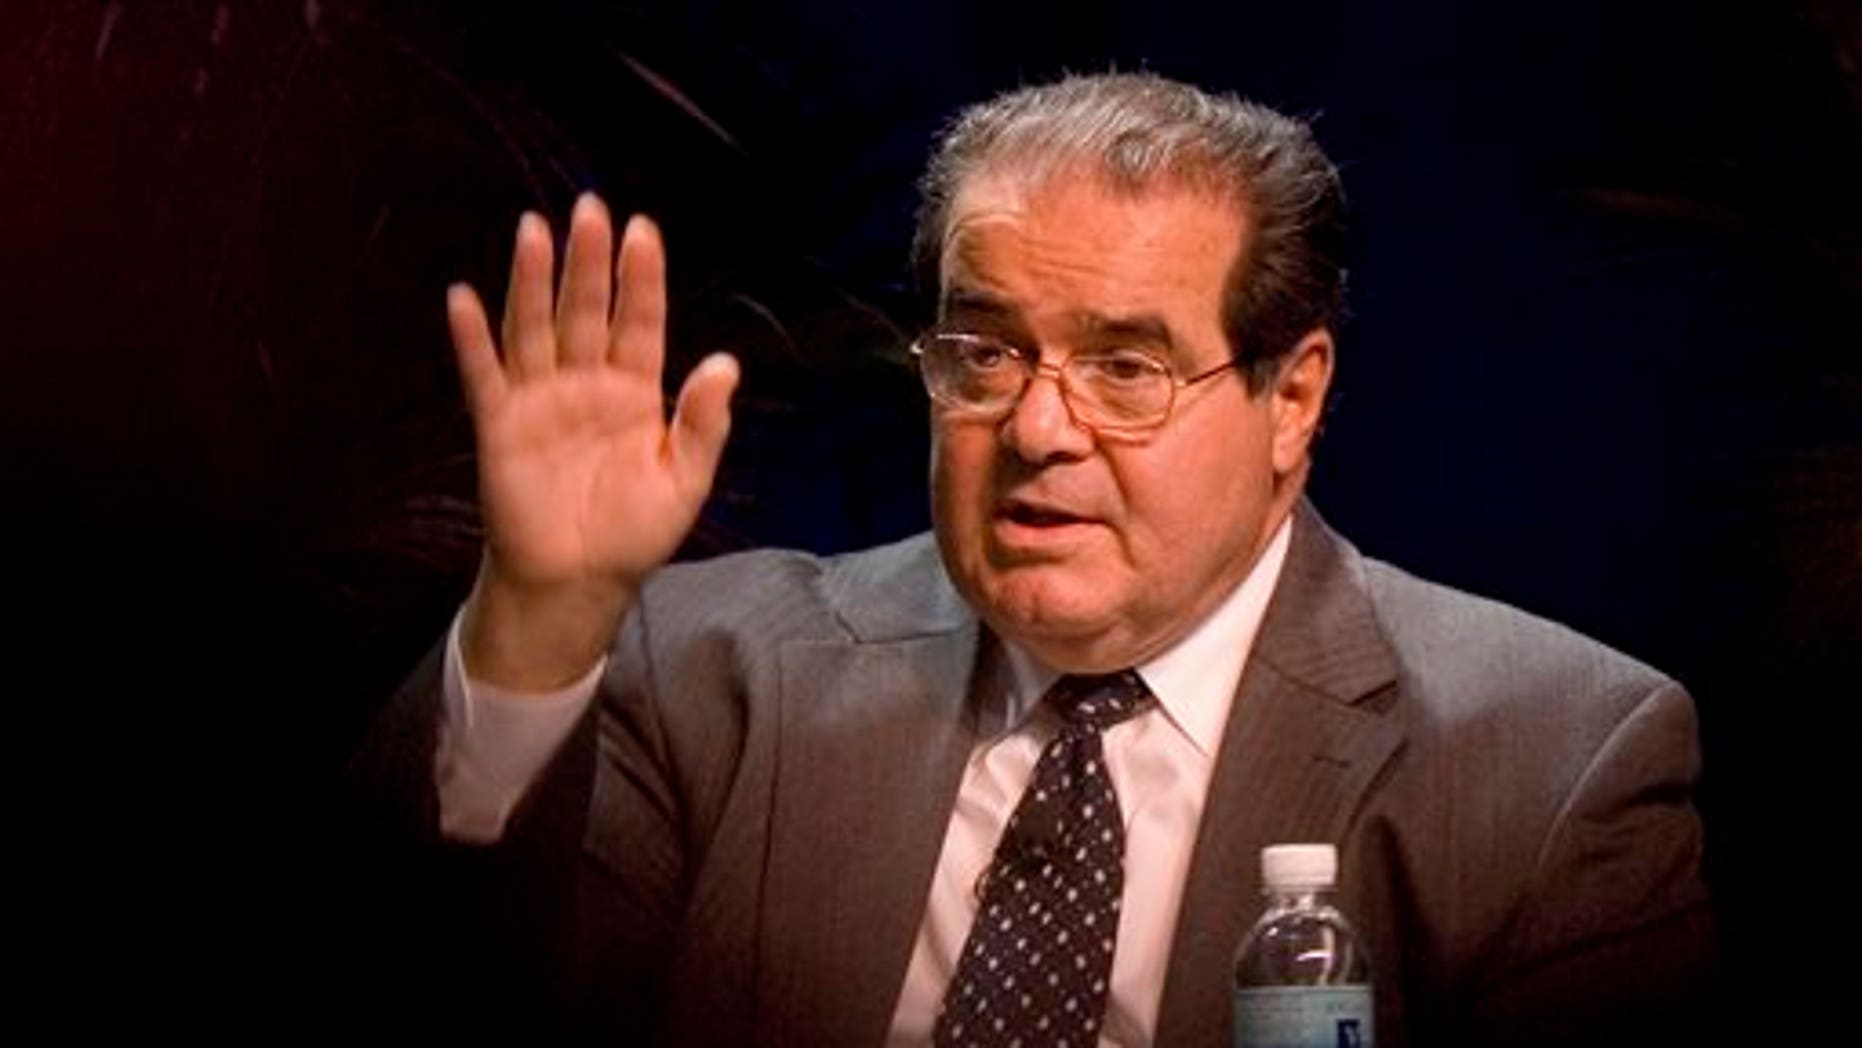 Supreme Court Associate Justice Antonin Scalia speaks at the ACLU Membership Conference in Washington on Oct. 15, 2006. (AP Photo/Chris Greenberg, File)